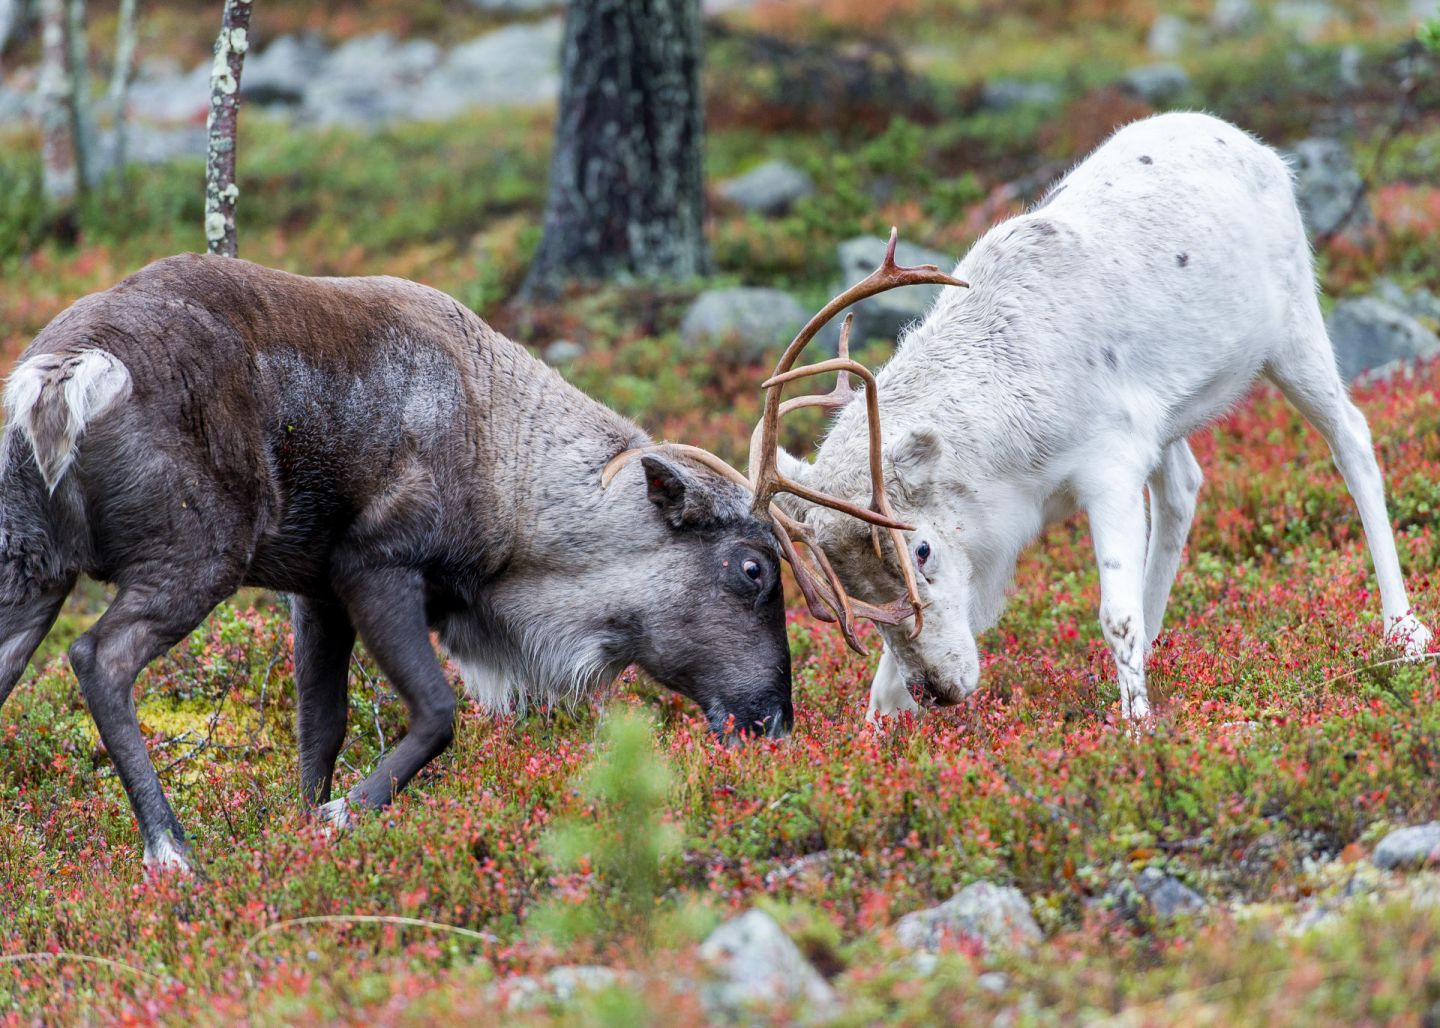 Reindeer facing (antlering) off during rutting season in autumn in Lapland